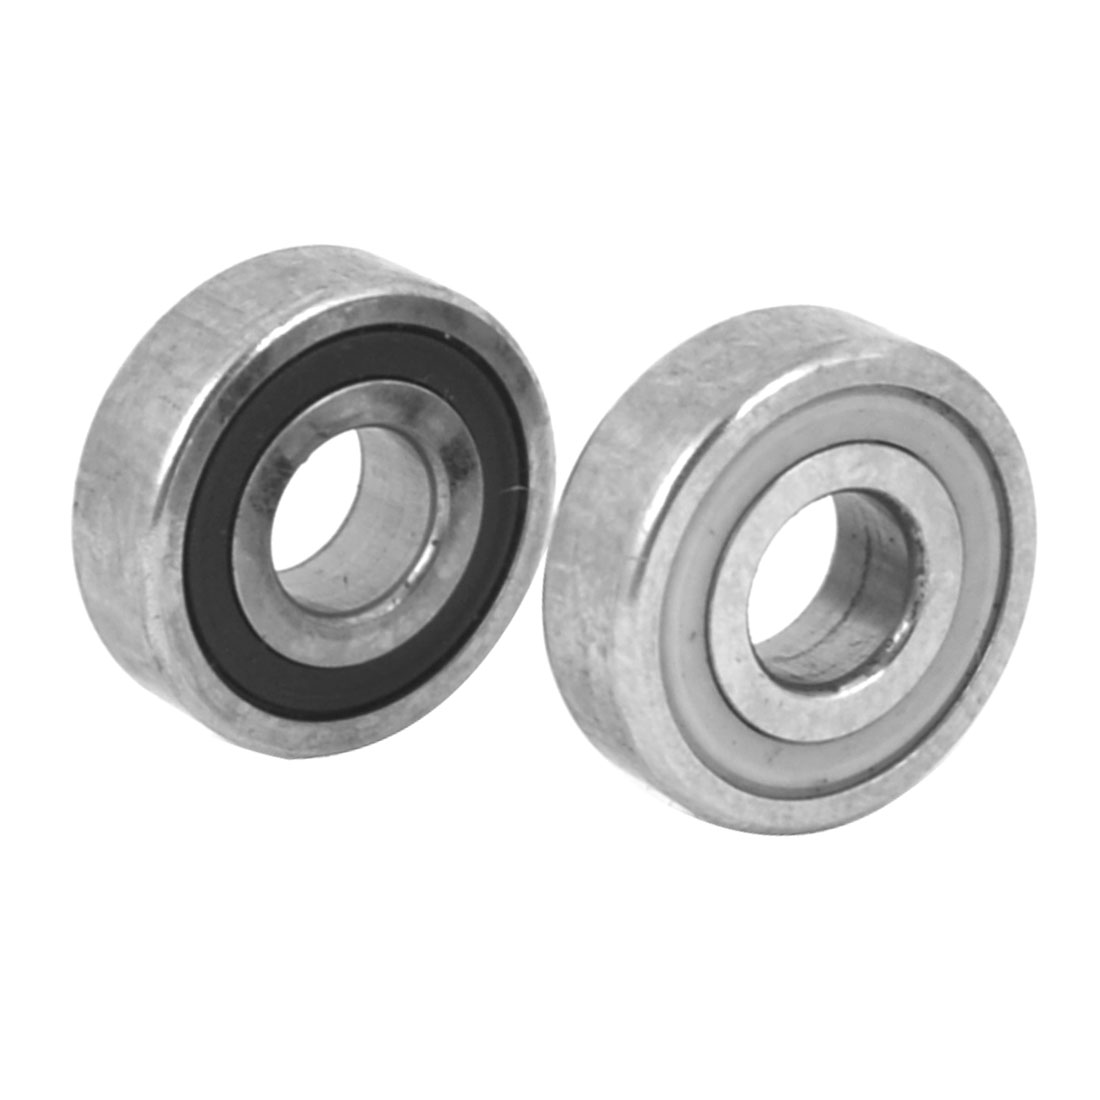 2 Pcs DIY 4 WD Racer Car Model Part Shaft Bearing Washer Screw Combined Bumper Pads Set